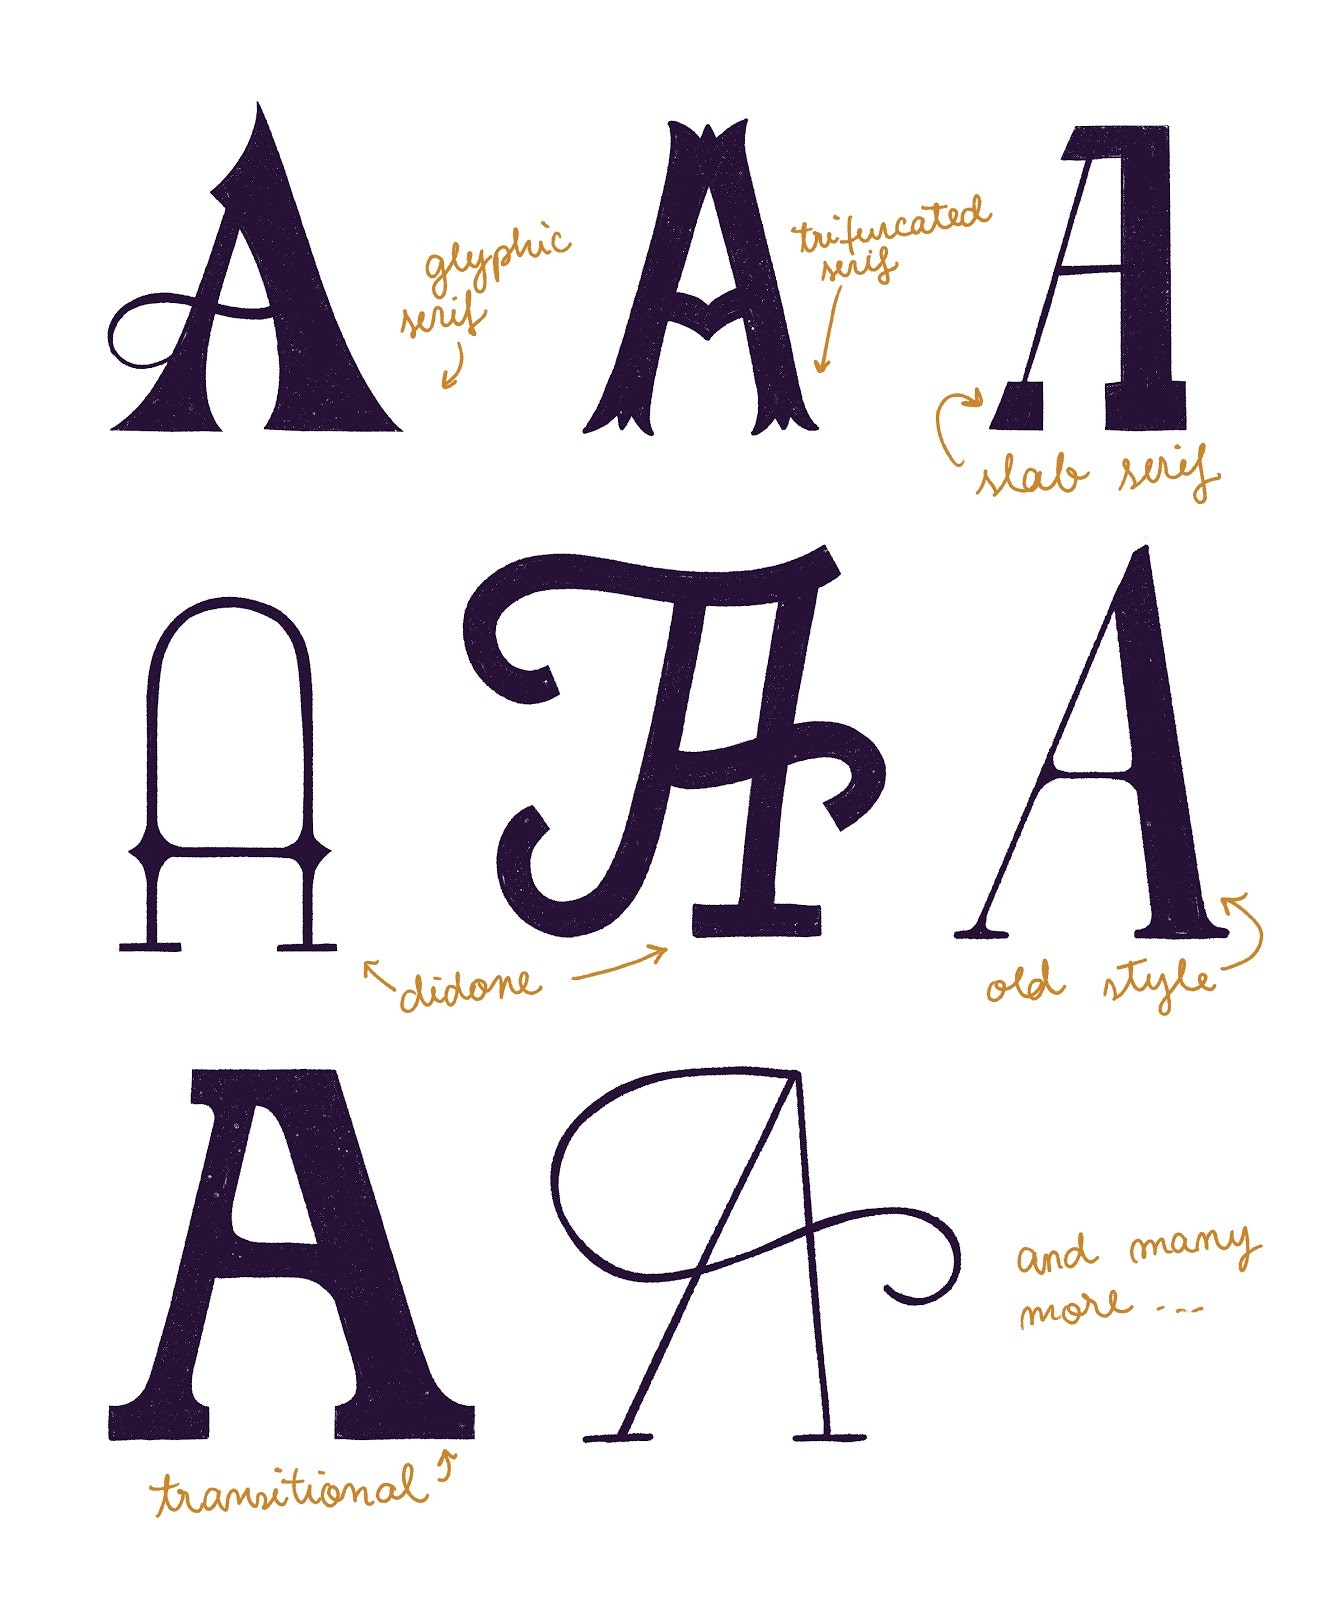 Ways to use serif